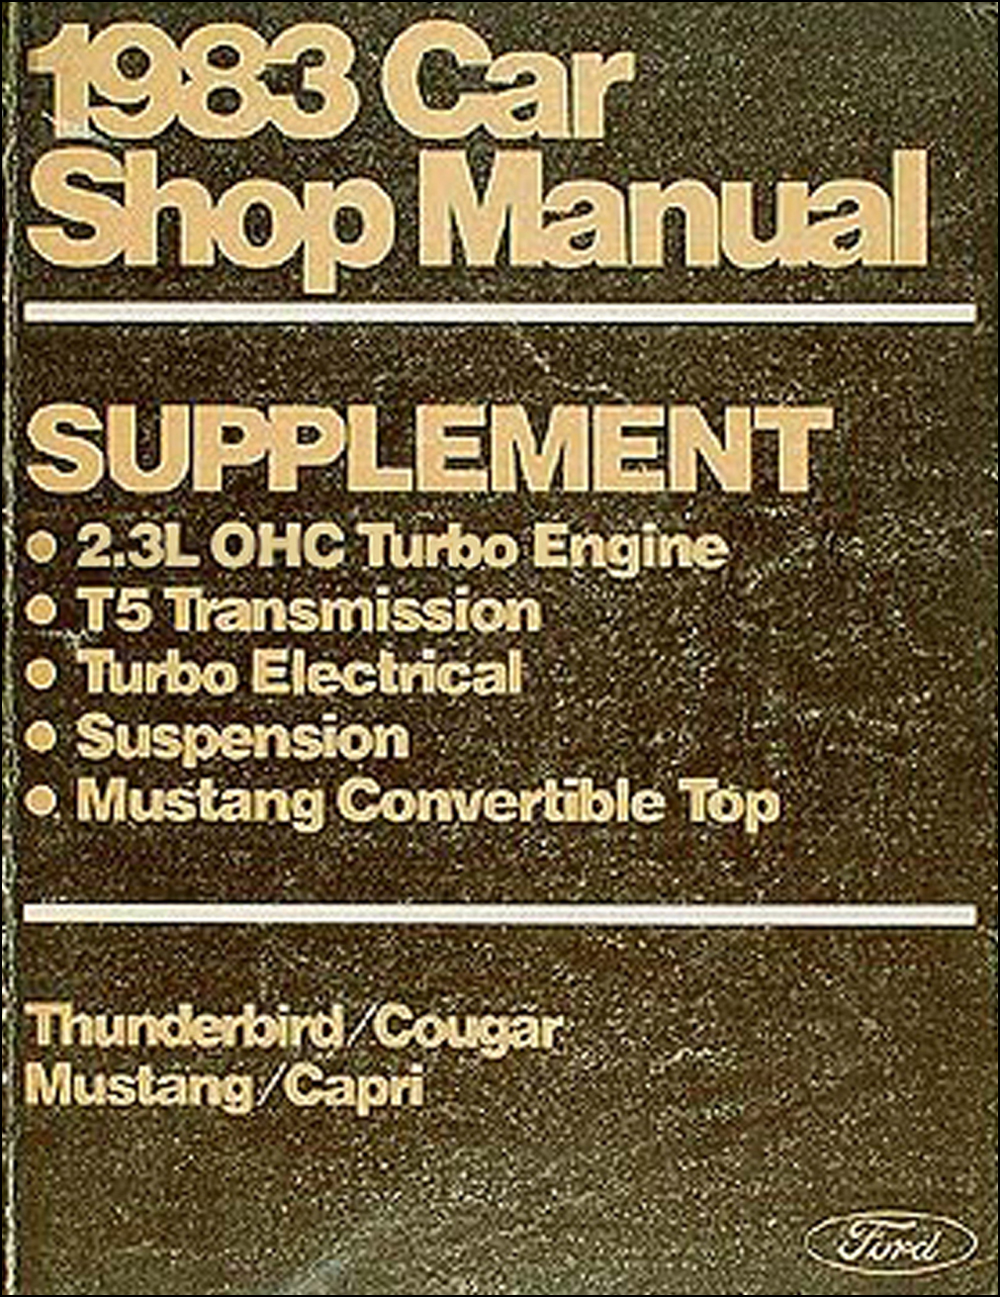 1983 Ford Mustang Ac Wiring Diagram Mercury Capri Foldout Original T Bird Cougar Turbo Engine Convertible Susp Repair Shop Manual Supp